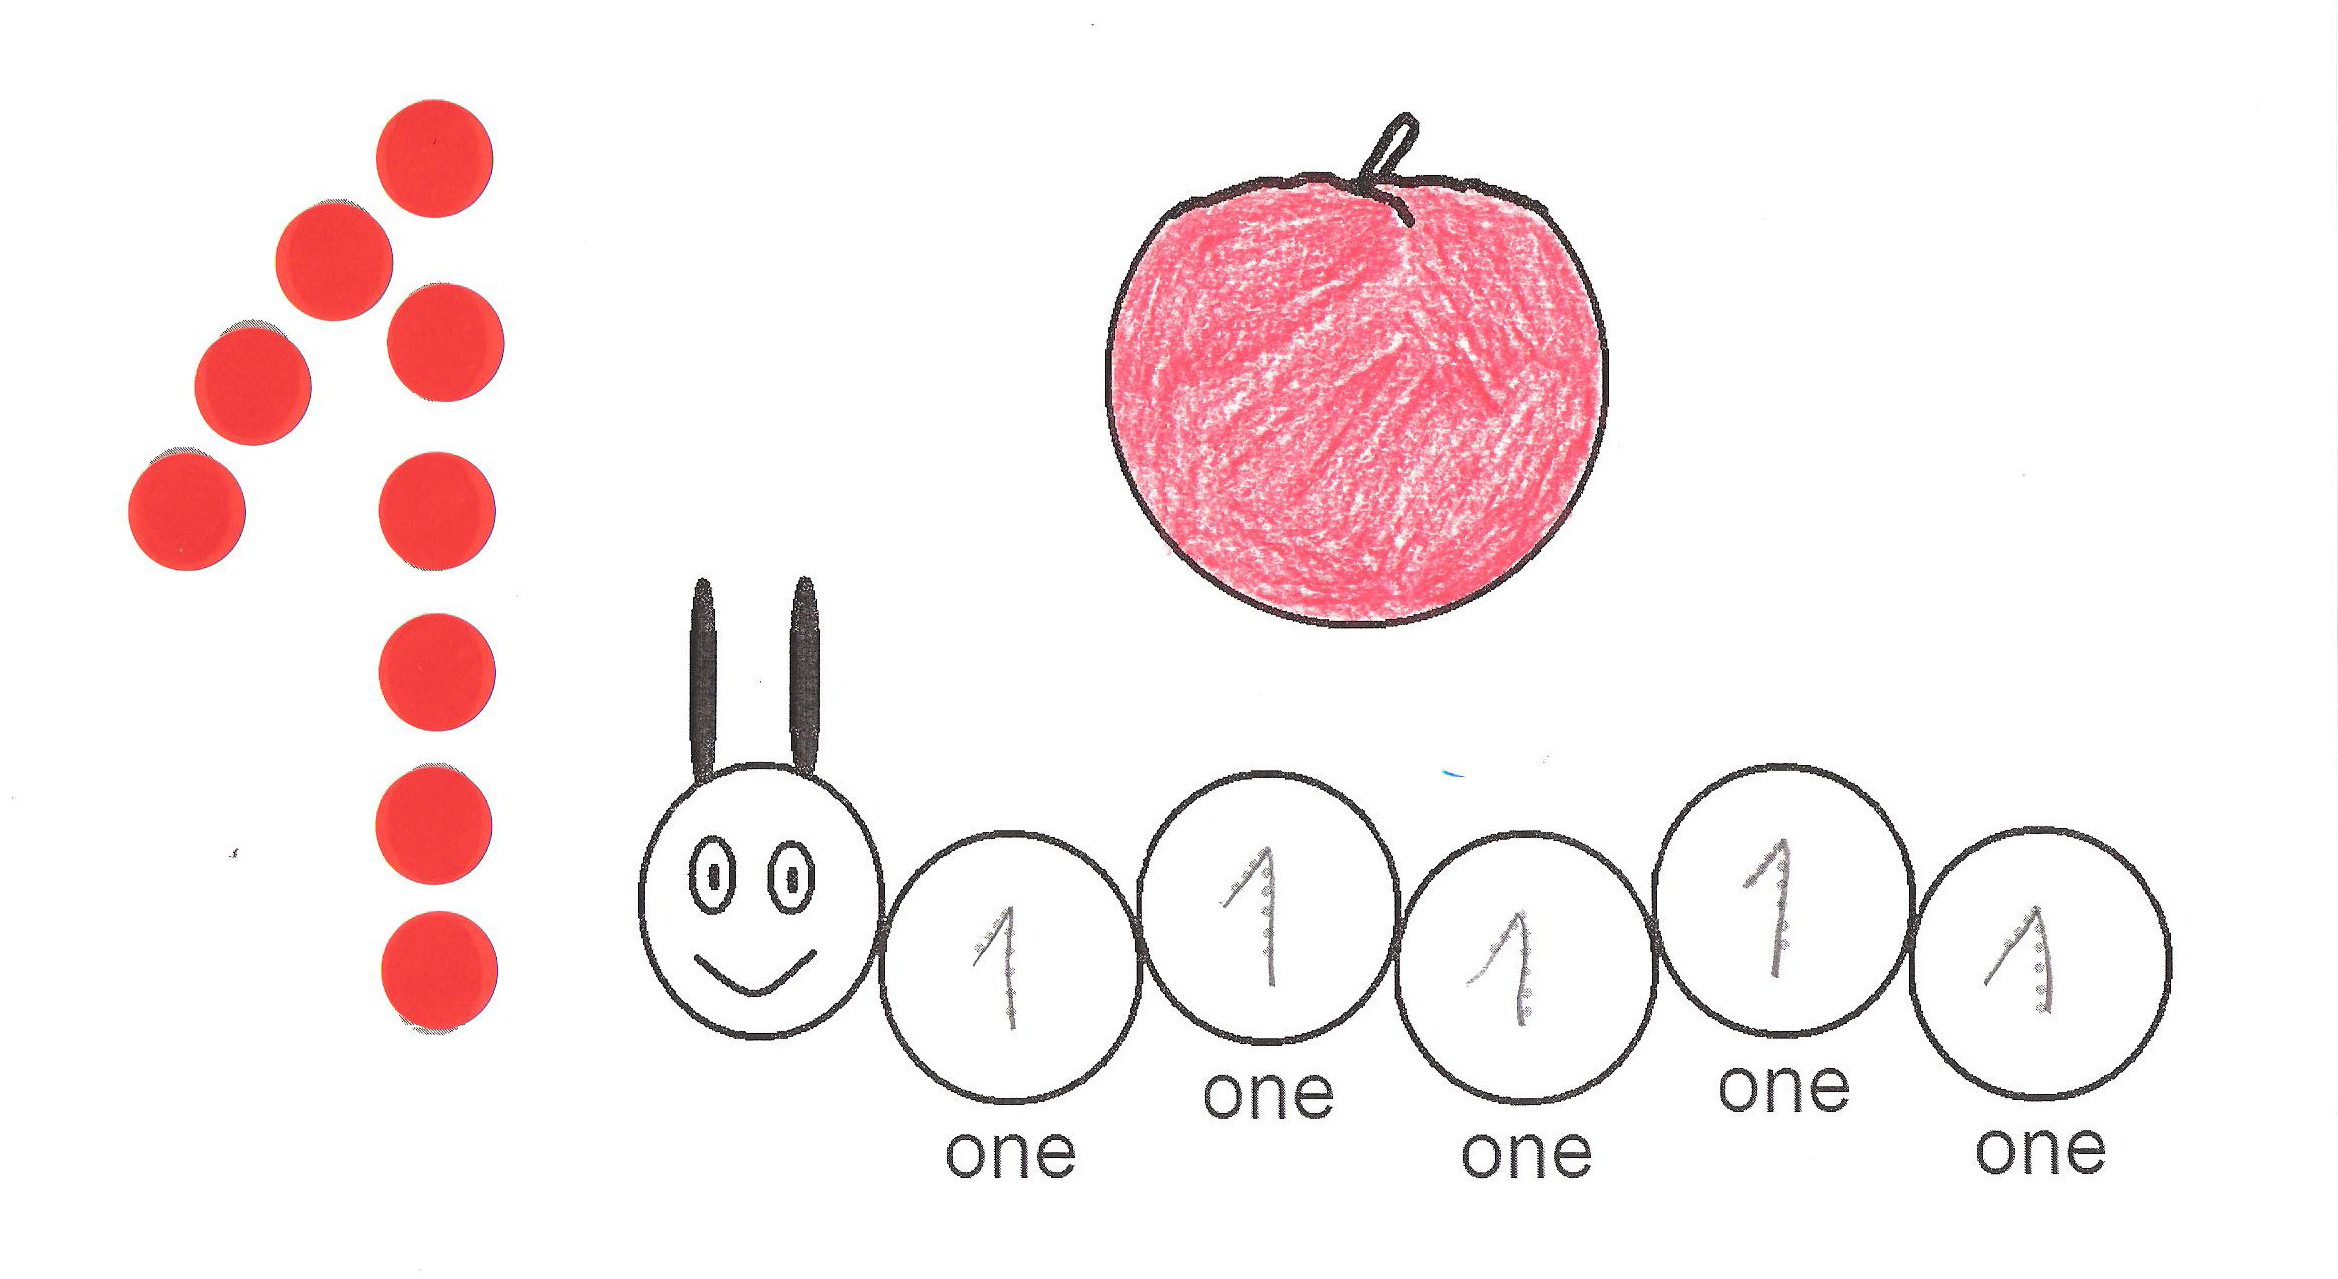 Number 1 ( one ) tracing and coloring worksheets | Crafts and ...